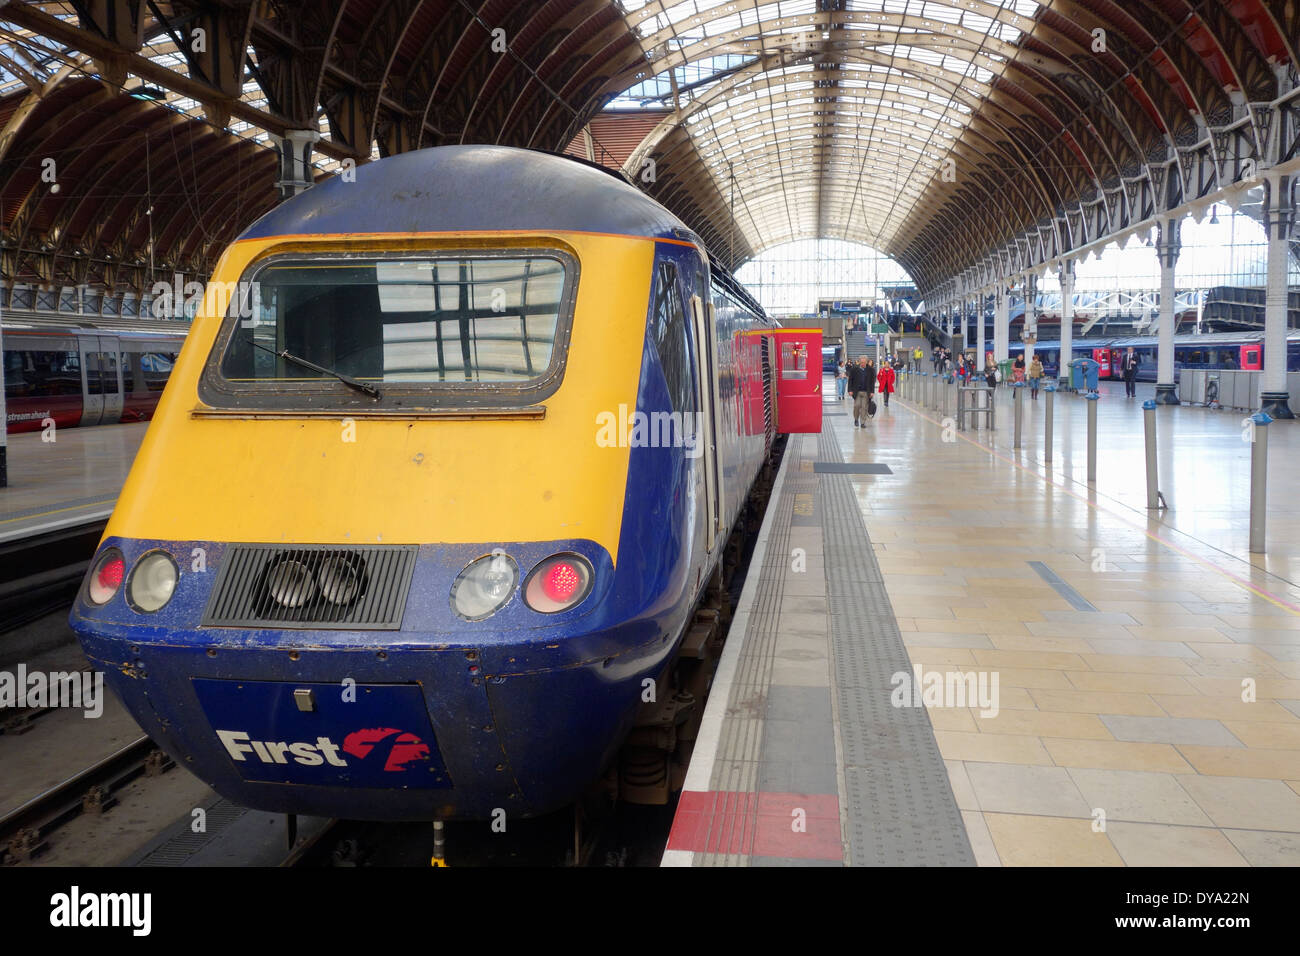 England, London, Paddington railway station. First Great Western Class 43 diesel train waiting for passengers to Stock Photo